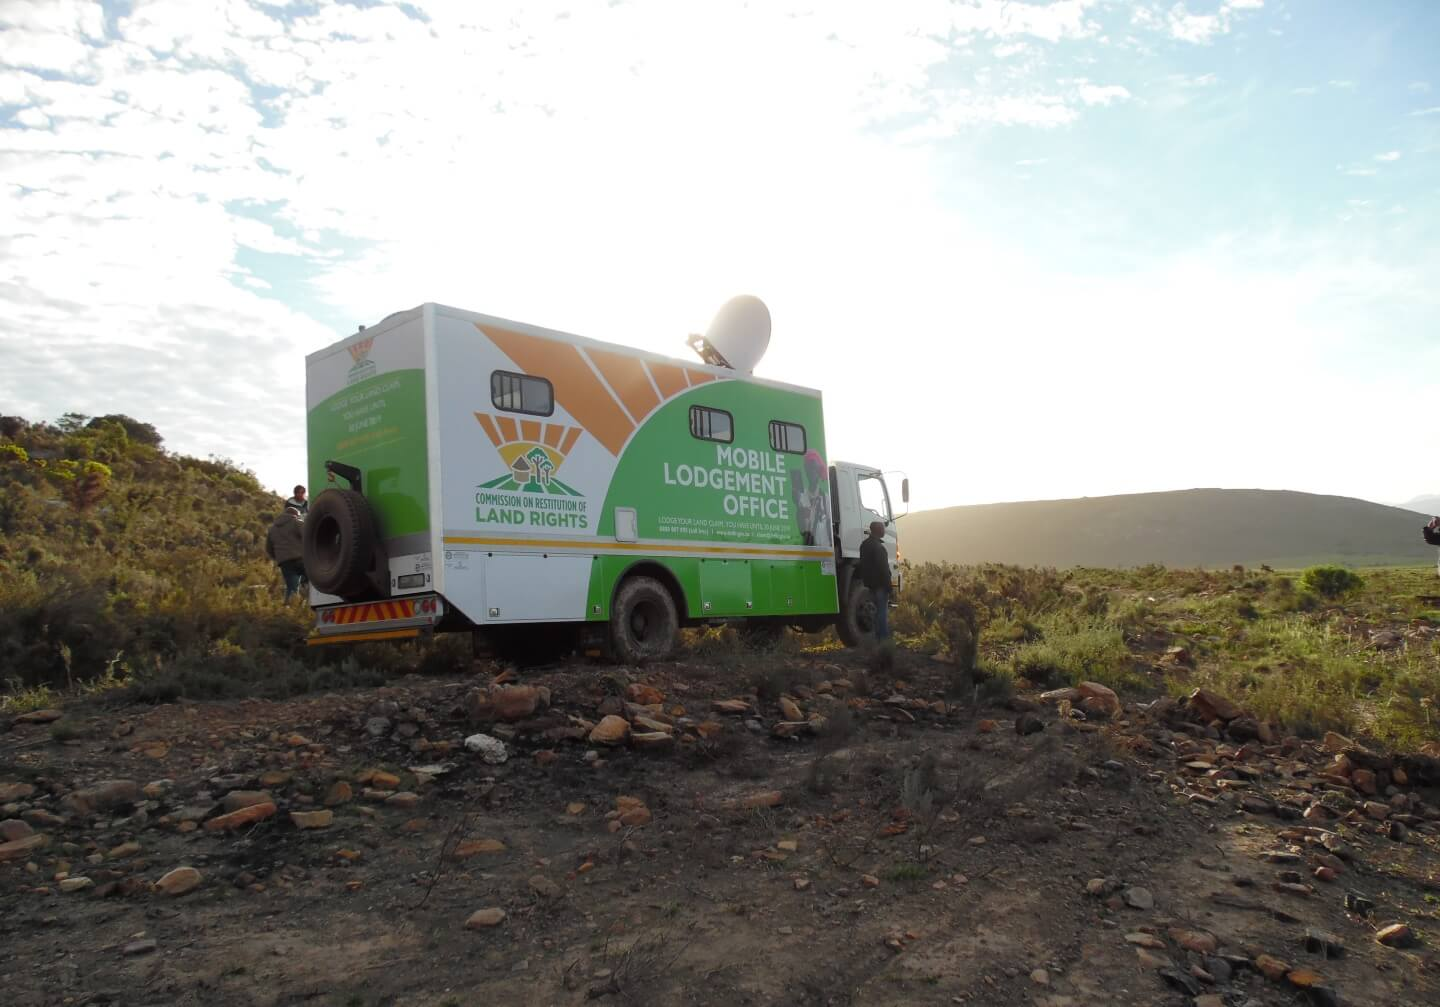 Land reform mobile offices travelling to remote communities